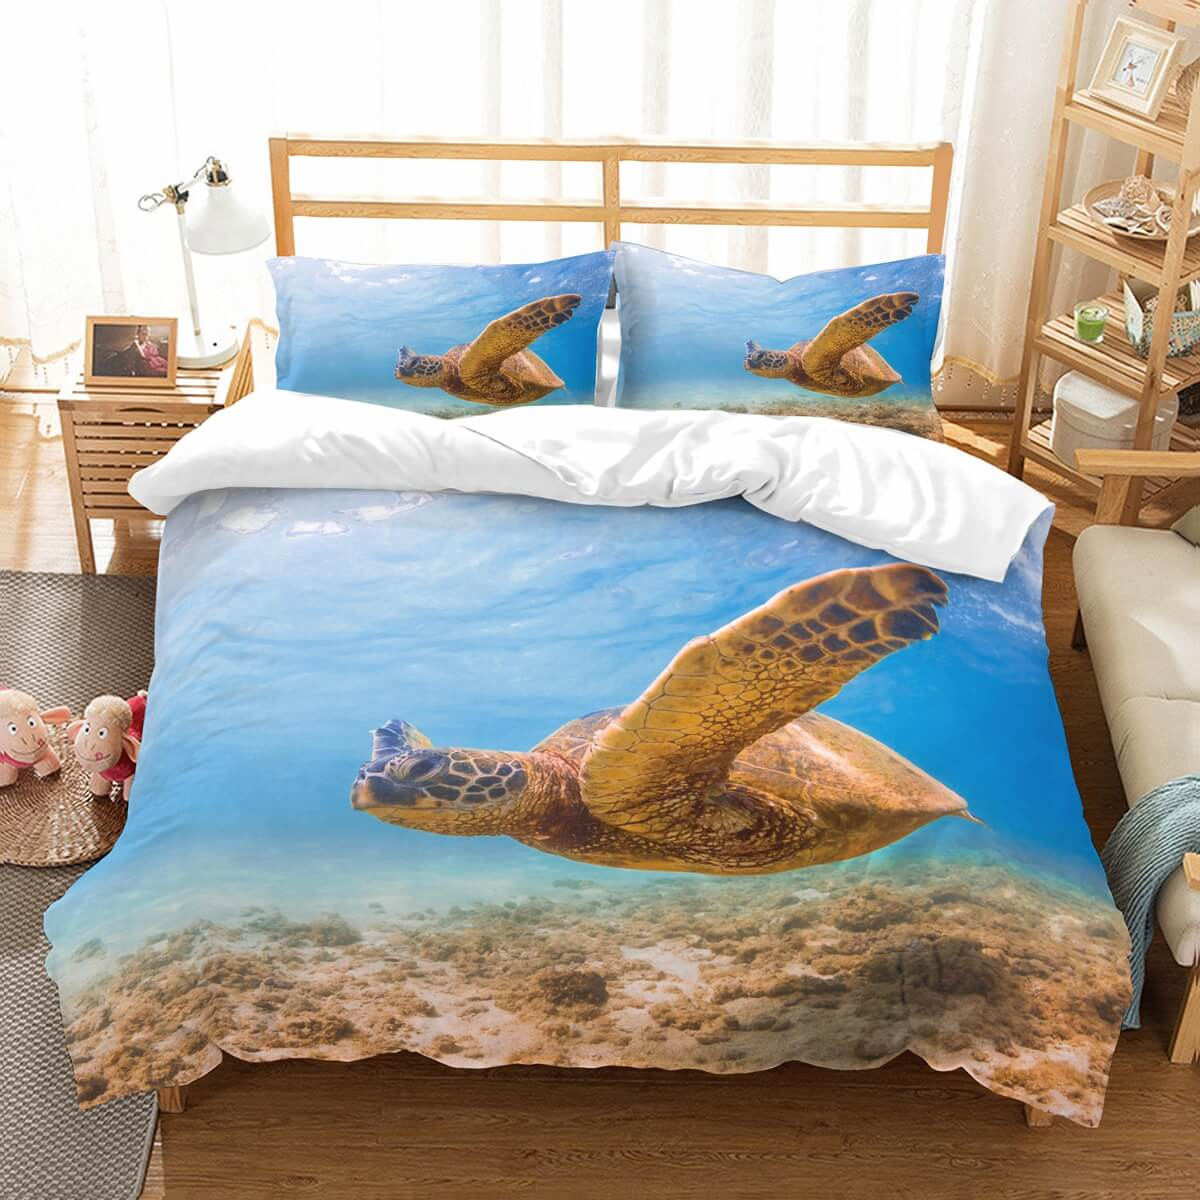 3D Customize Turtles Bedding Set Duvet Cover Set Bedroom Set Bedlinen